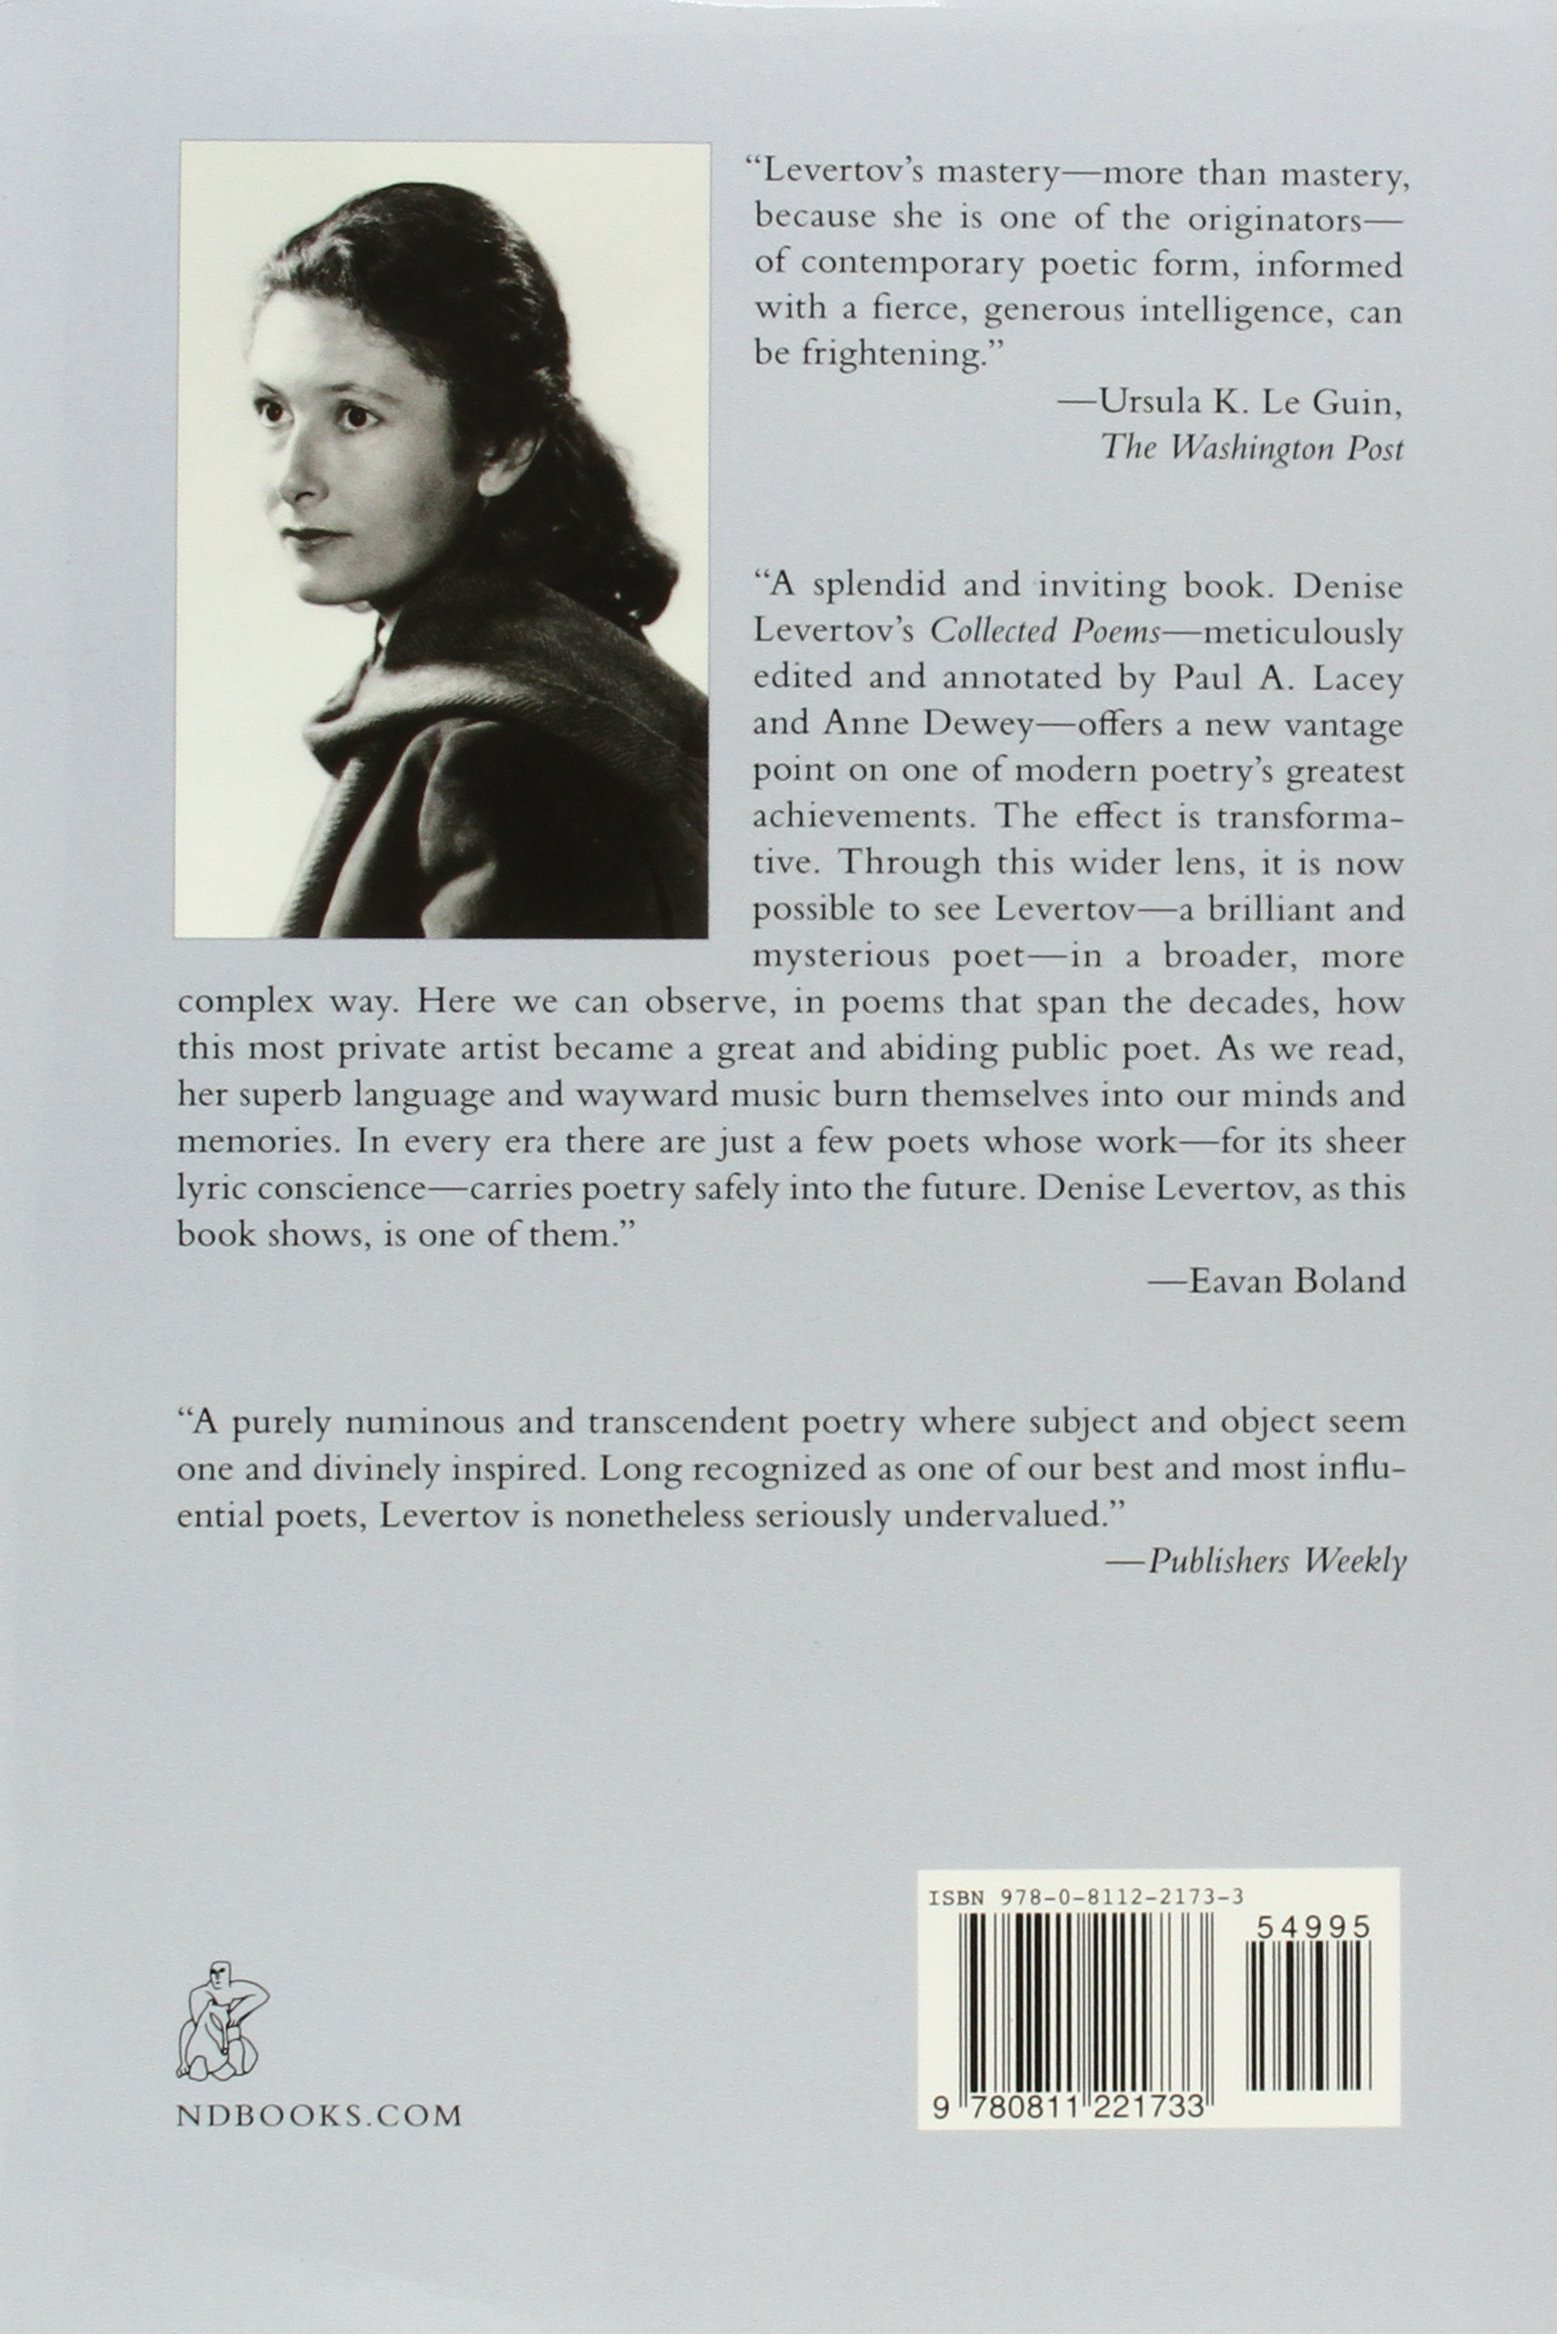 The Collected Poems Of Denise Levertov: Amazon: Denise Levertov, Paul  A Lacey, Eavan Boland: 9780811221733: Books